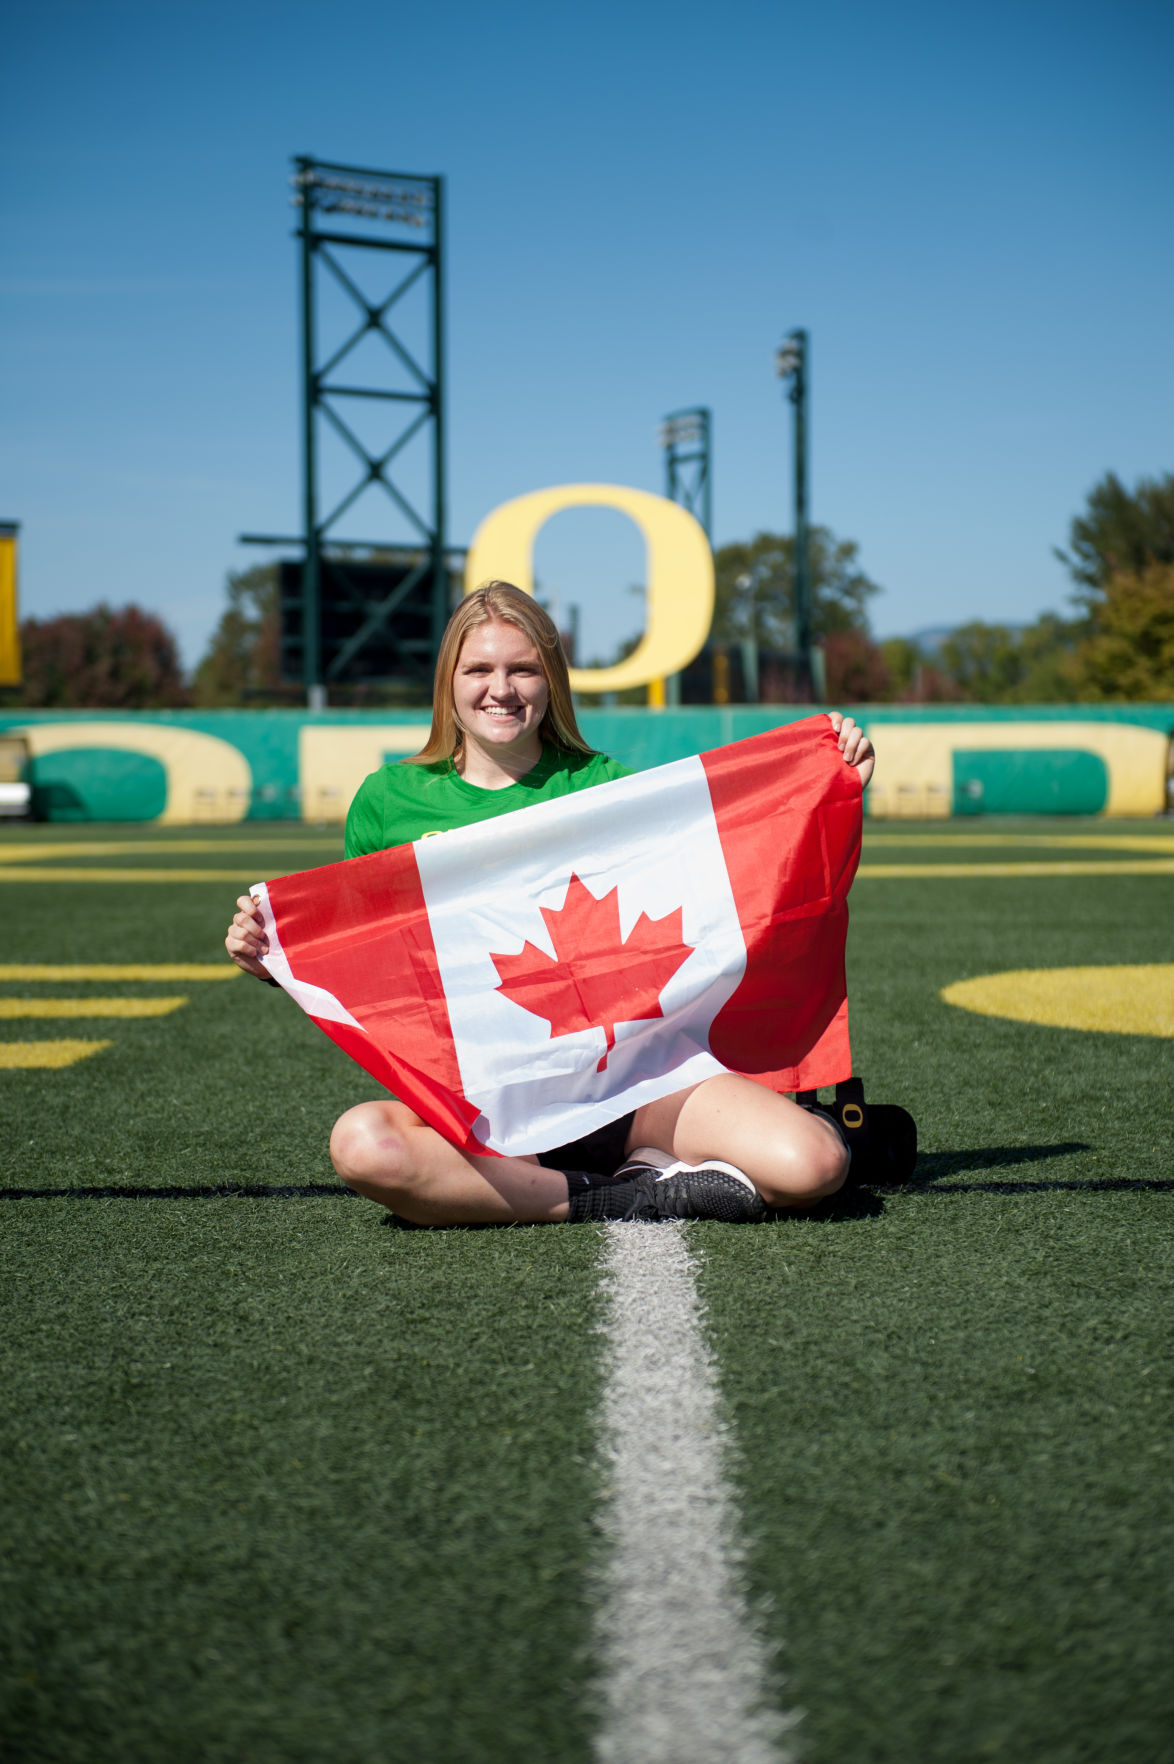 A northern star: How playing for Canada connected Hannah Taylor to Oregon soccer